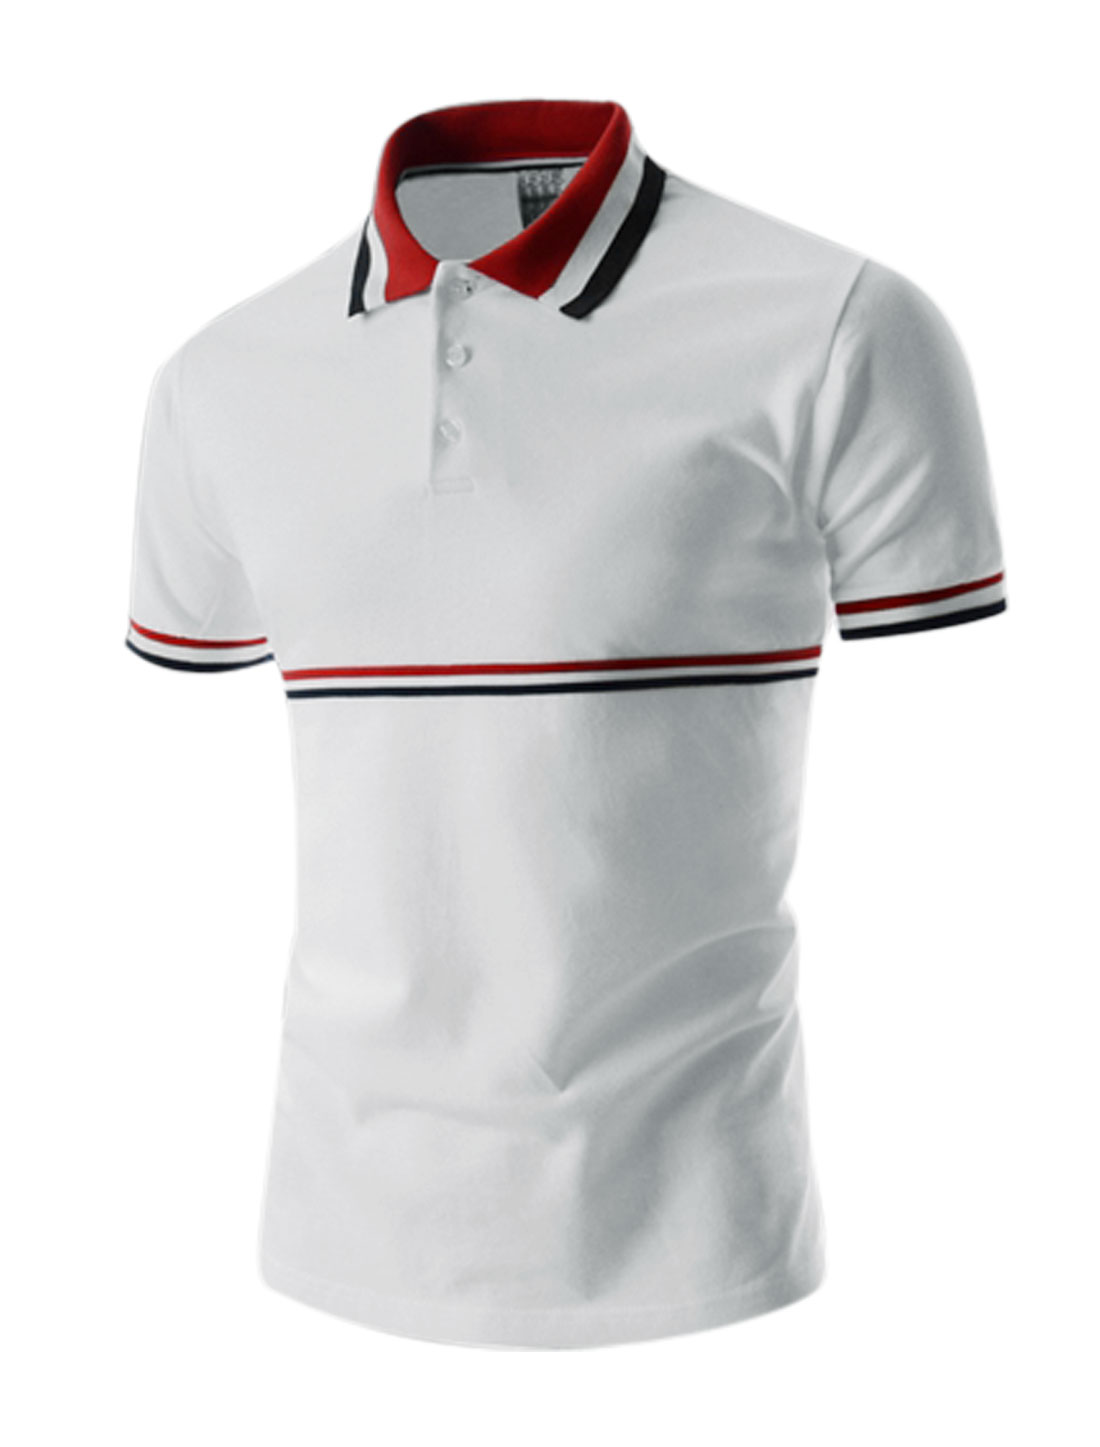 Men Stripes Detail Ribbed Point Collar Short Sleeve Polo Shirt White Red M